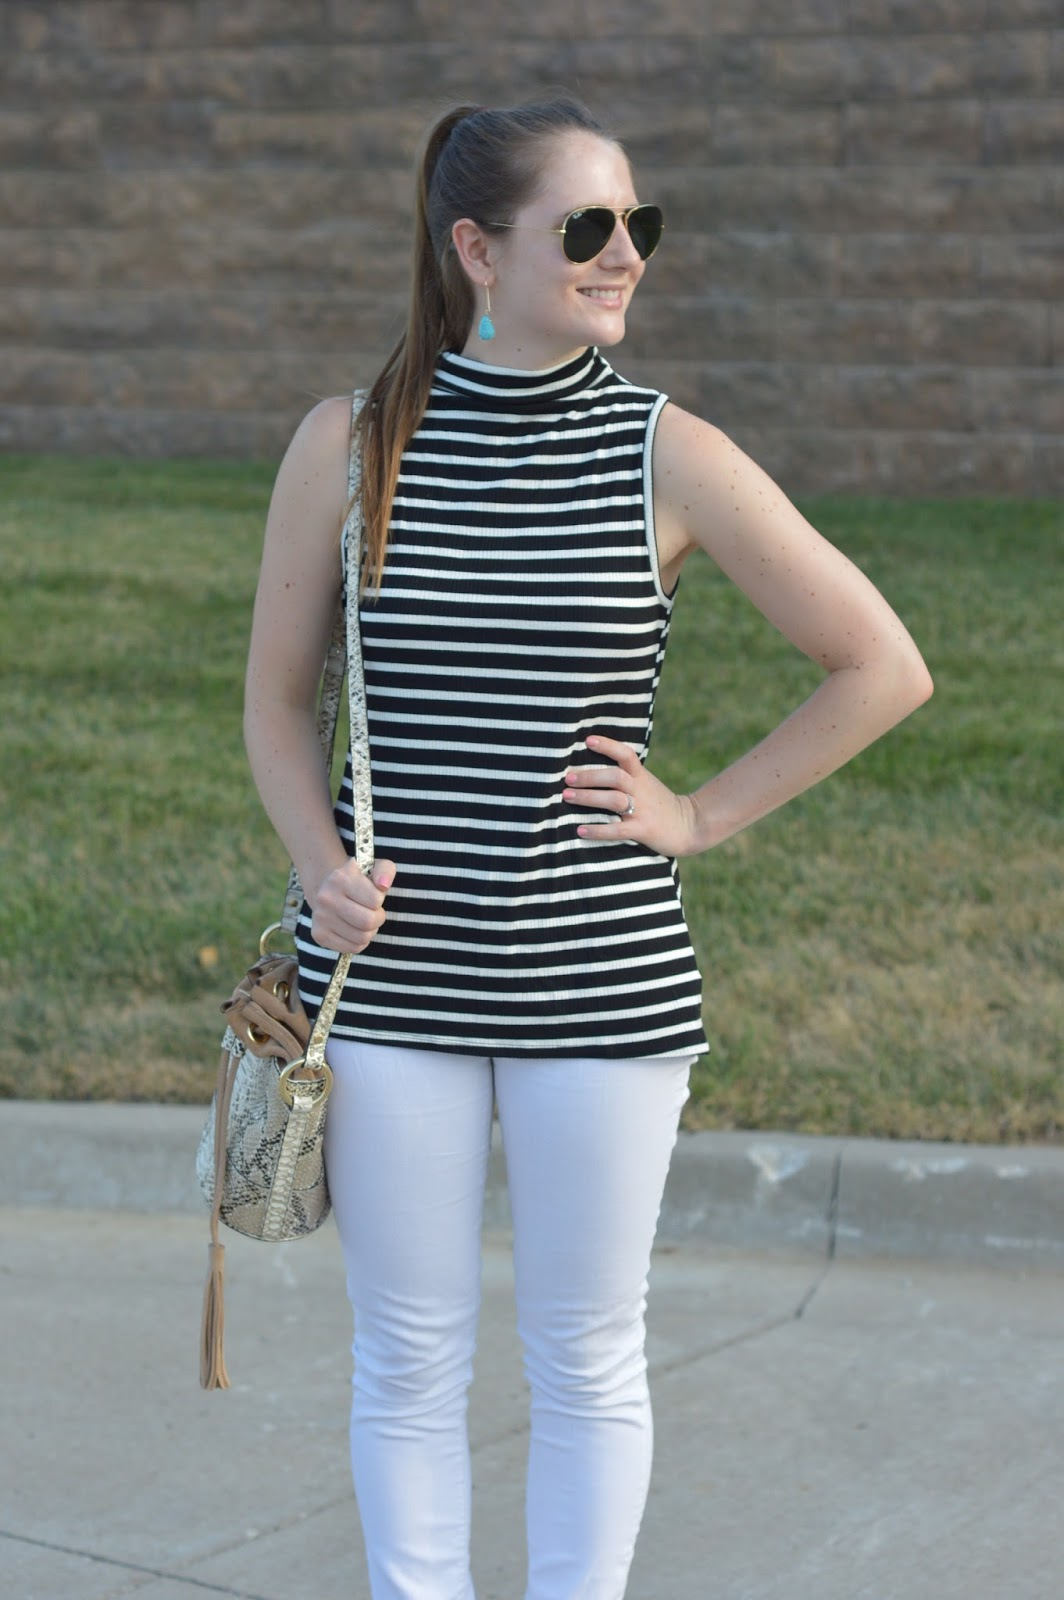 striped tops in the nordstrom sale | a memory of us | cute outfits for summer | mock neck tank top outfit ideas | black and white stripes | a memory of us | what to wear this summer |